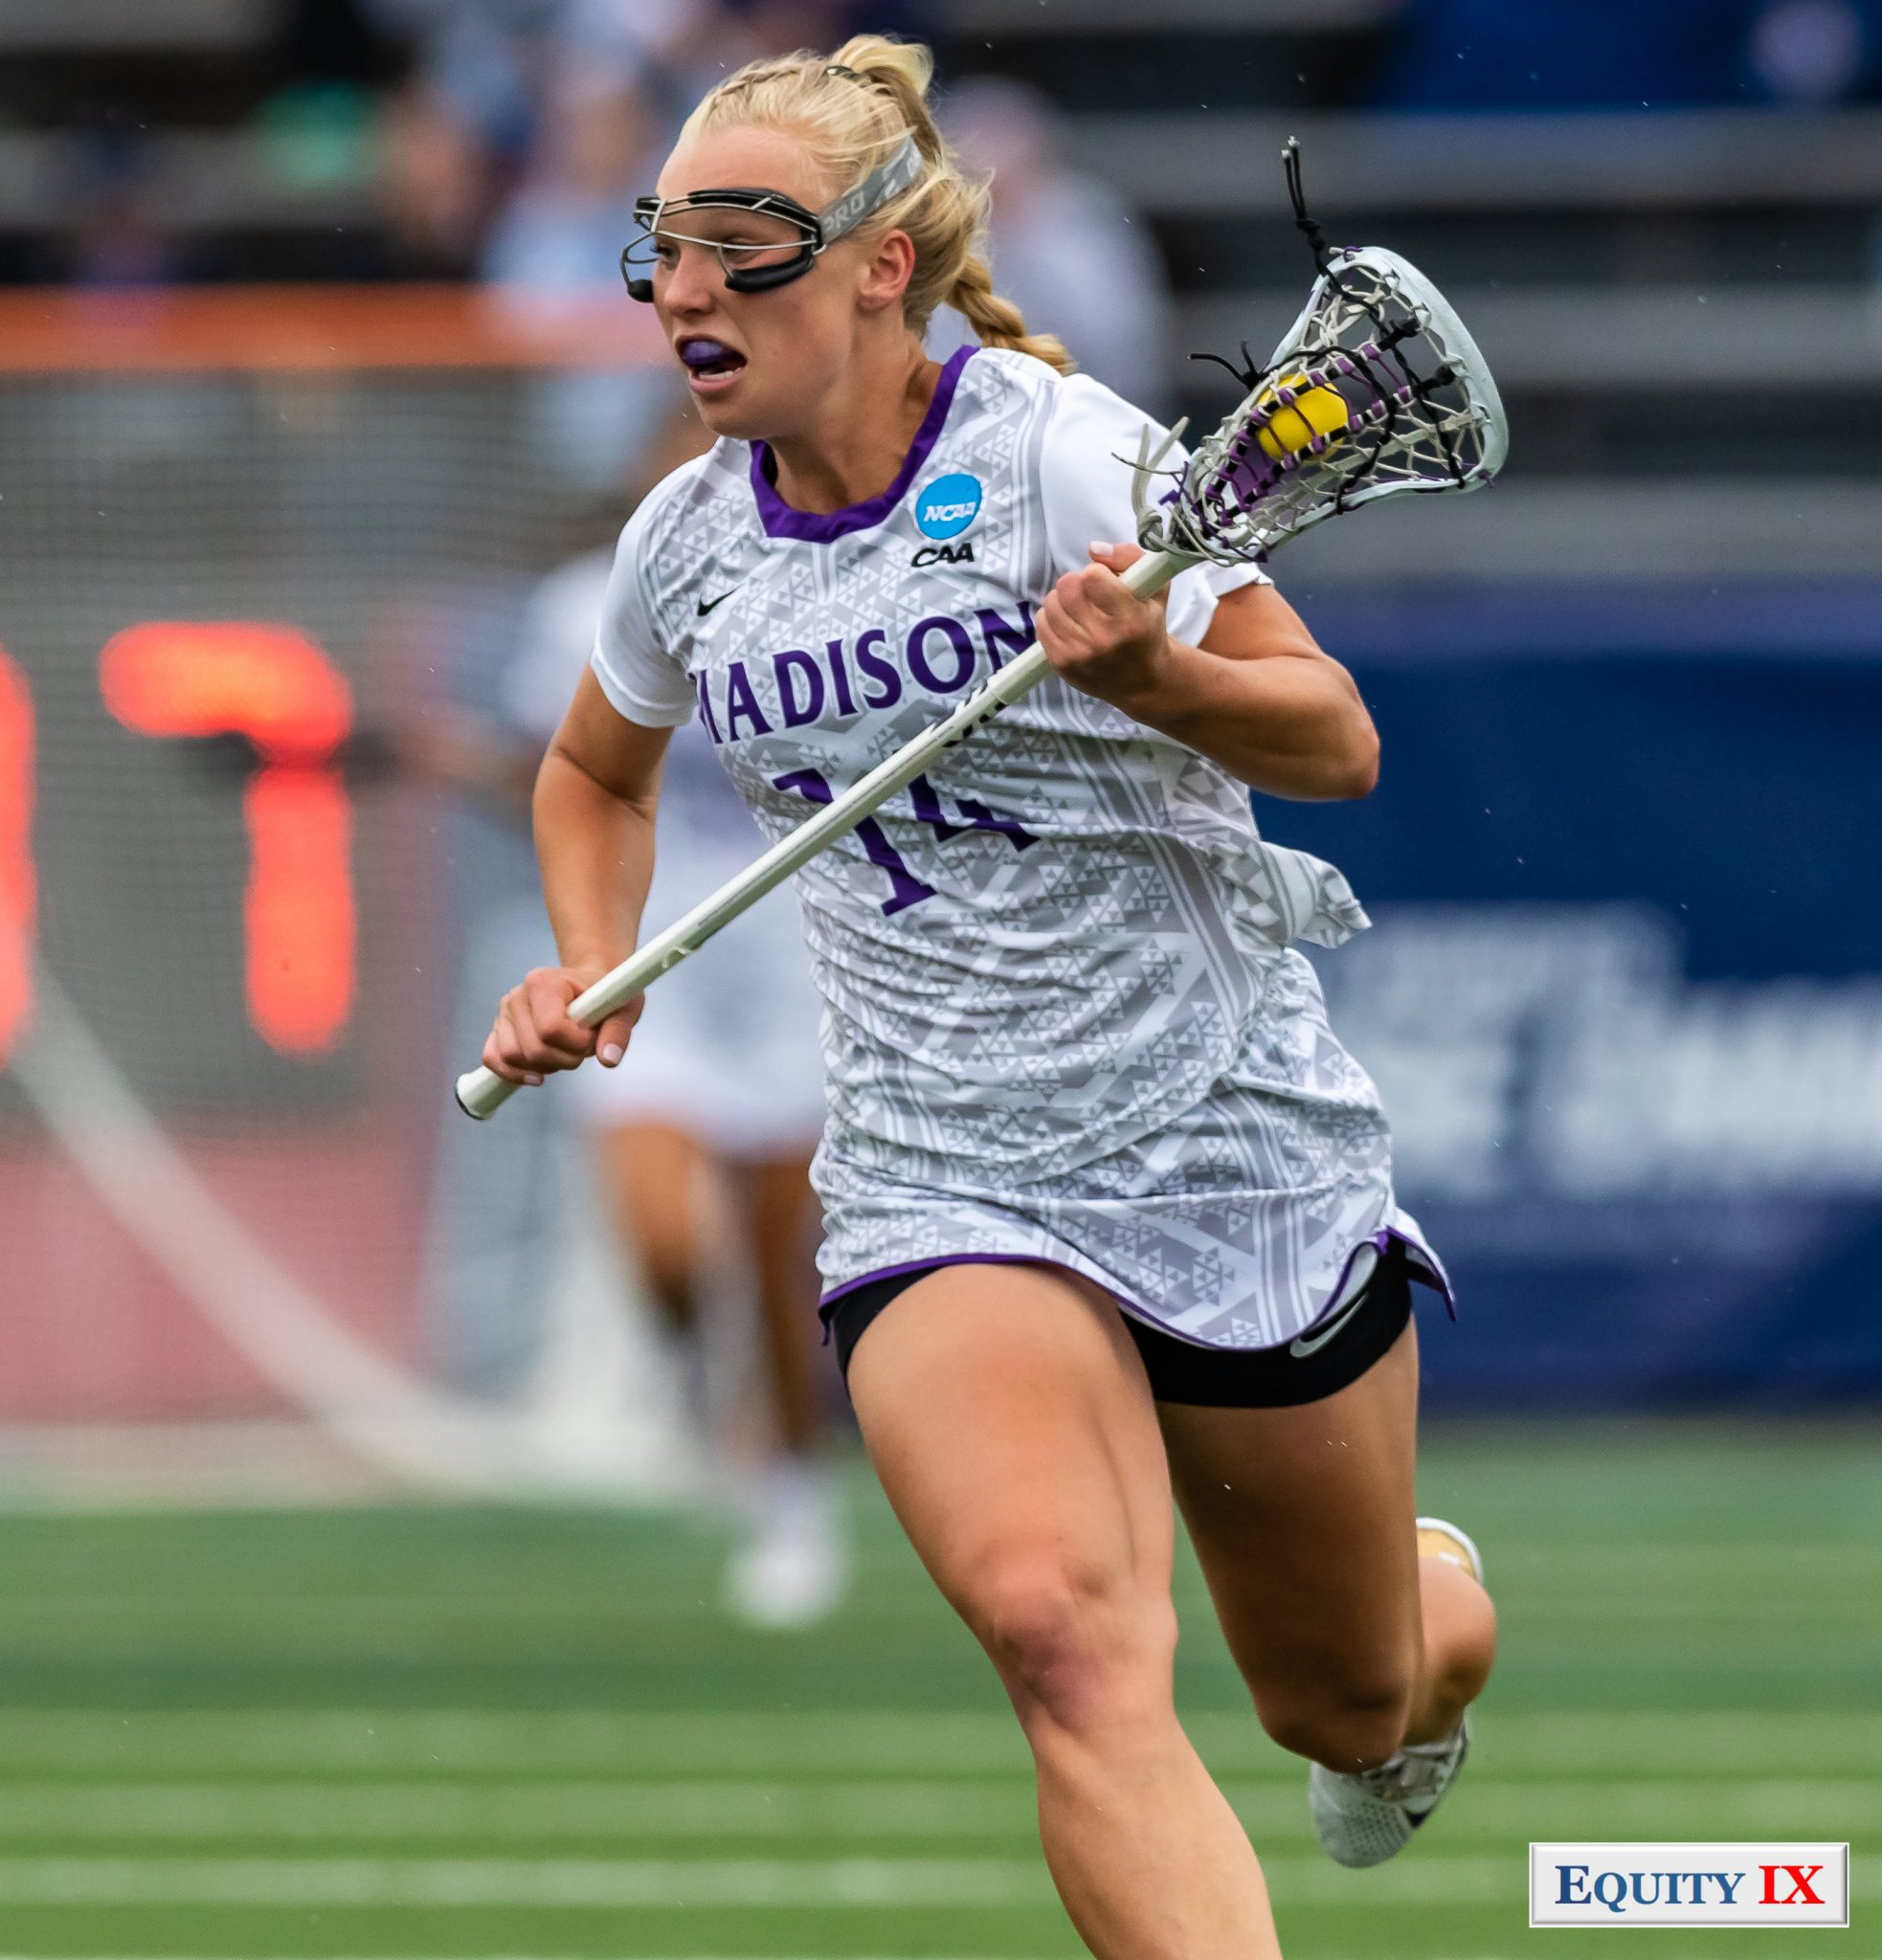 """Kristen Gaudian (JMU #14) cradles the yellow ball left handed going to goal with goggles and purple JMU mouthguard, """"Madison"""", """"NCAA"""" and """"CAA"""" logos on her jersey - 2018 NCAA Women's Lacrosse Championship Gam - Tewaaraton Finalist © Equity IX - SportsOgram - Leigh Ernst Friestedt"""